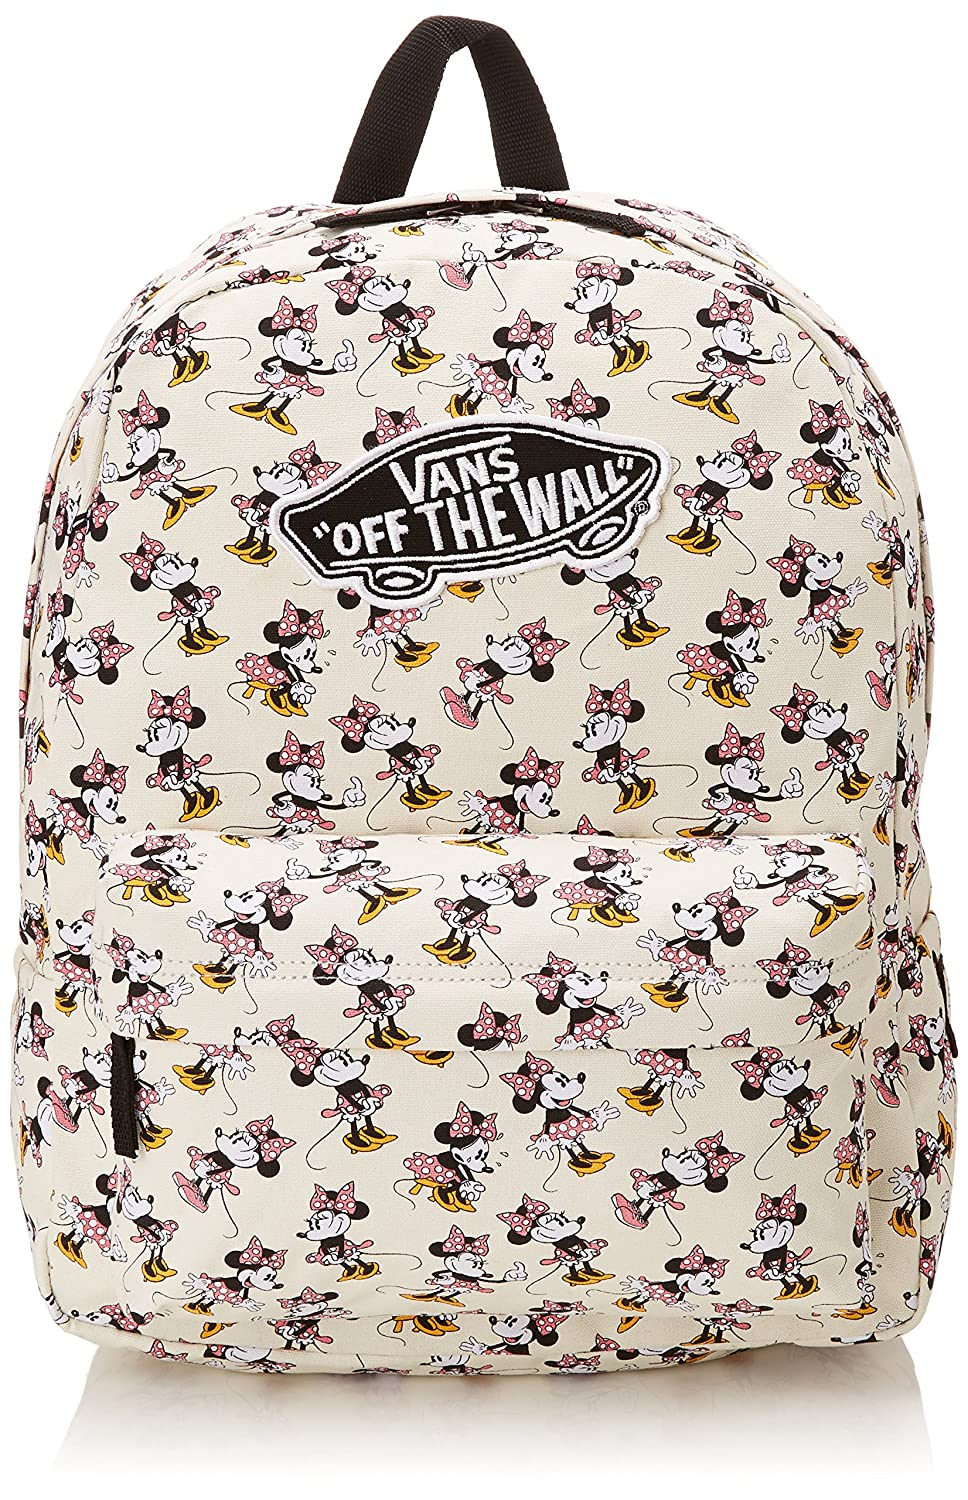 292e253d92a0f Vans Big Girls' Disney Backpack (Kid) - Minnie Mouse - One Size: Amazon.in:  Clothing & Accessories